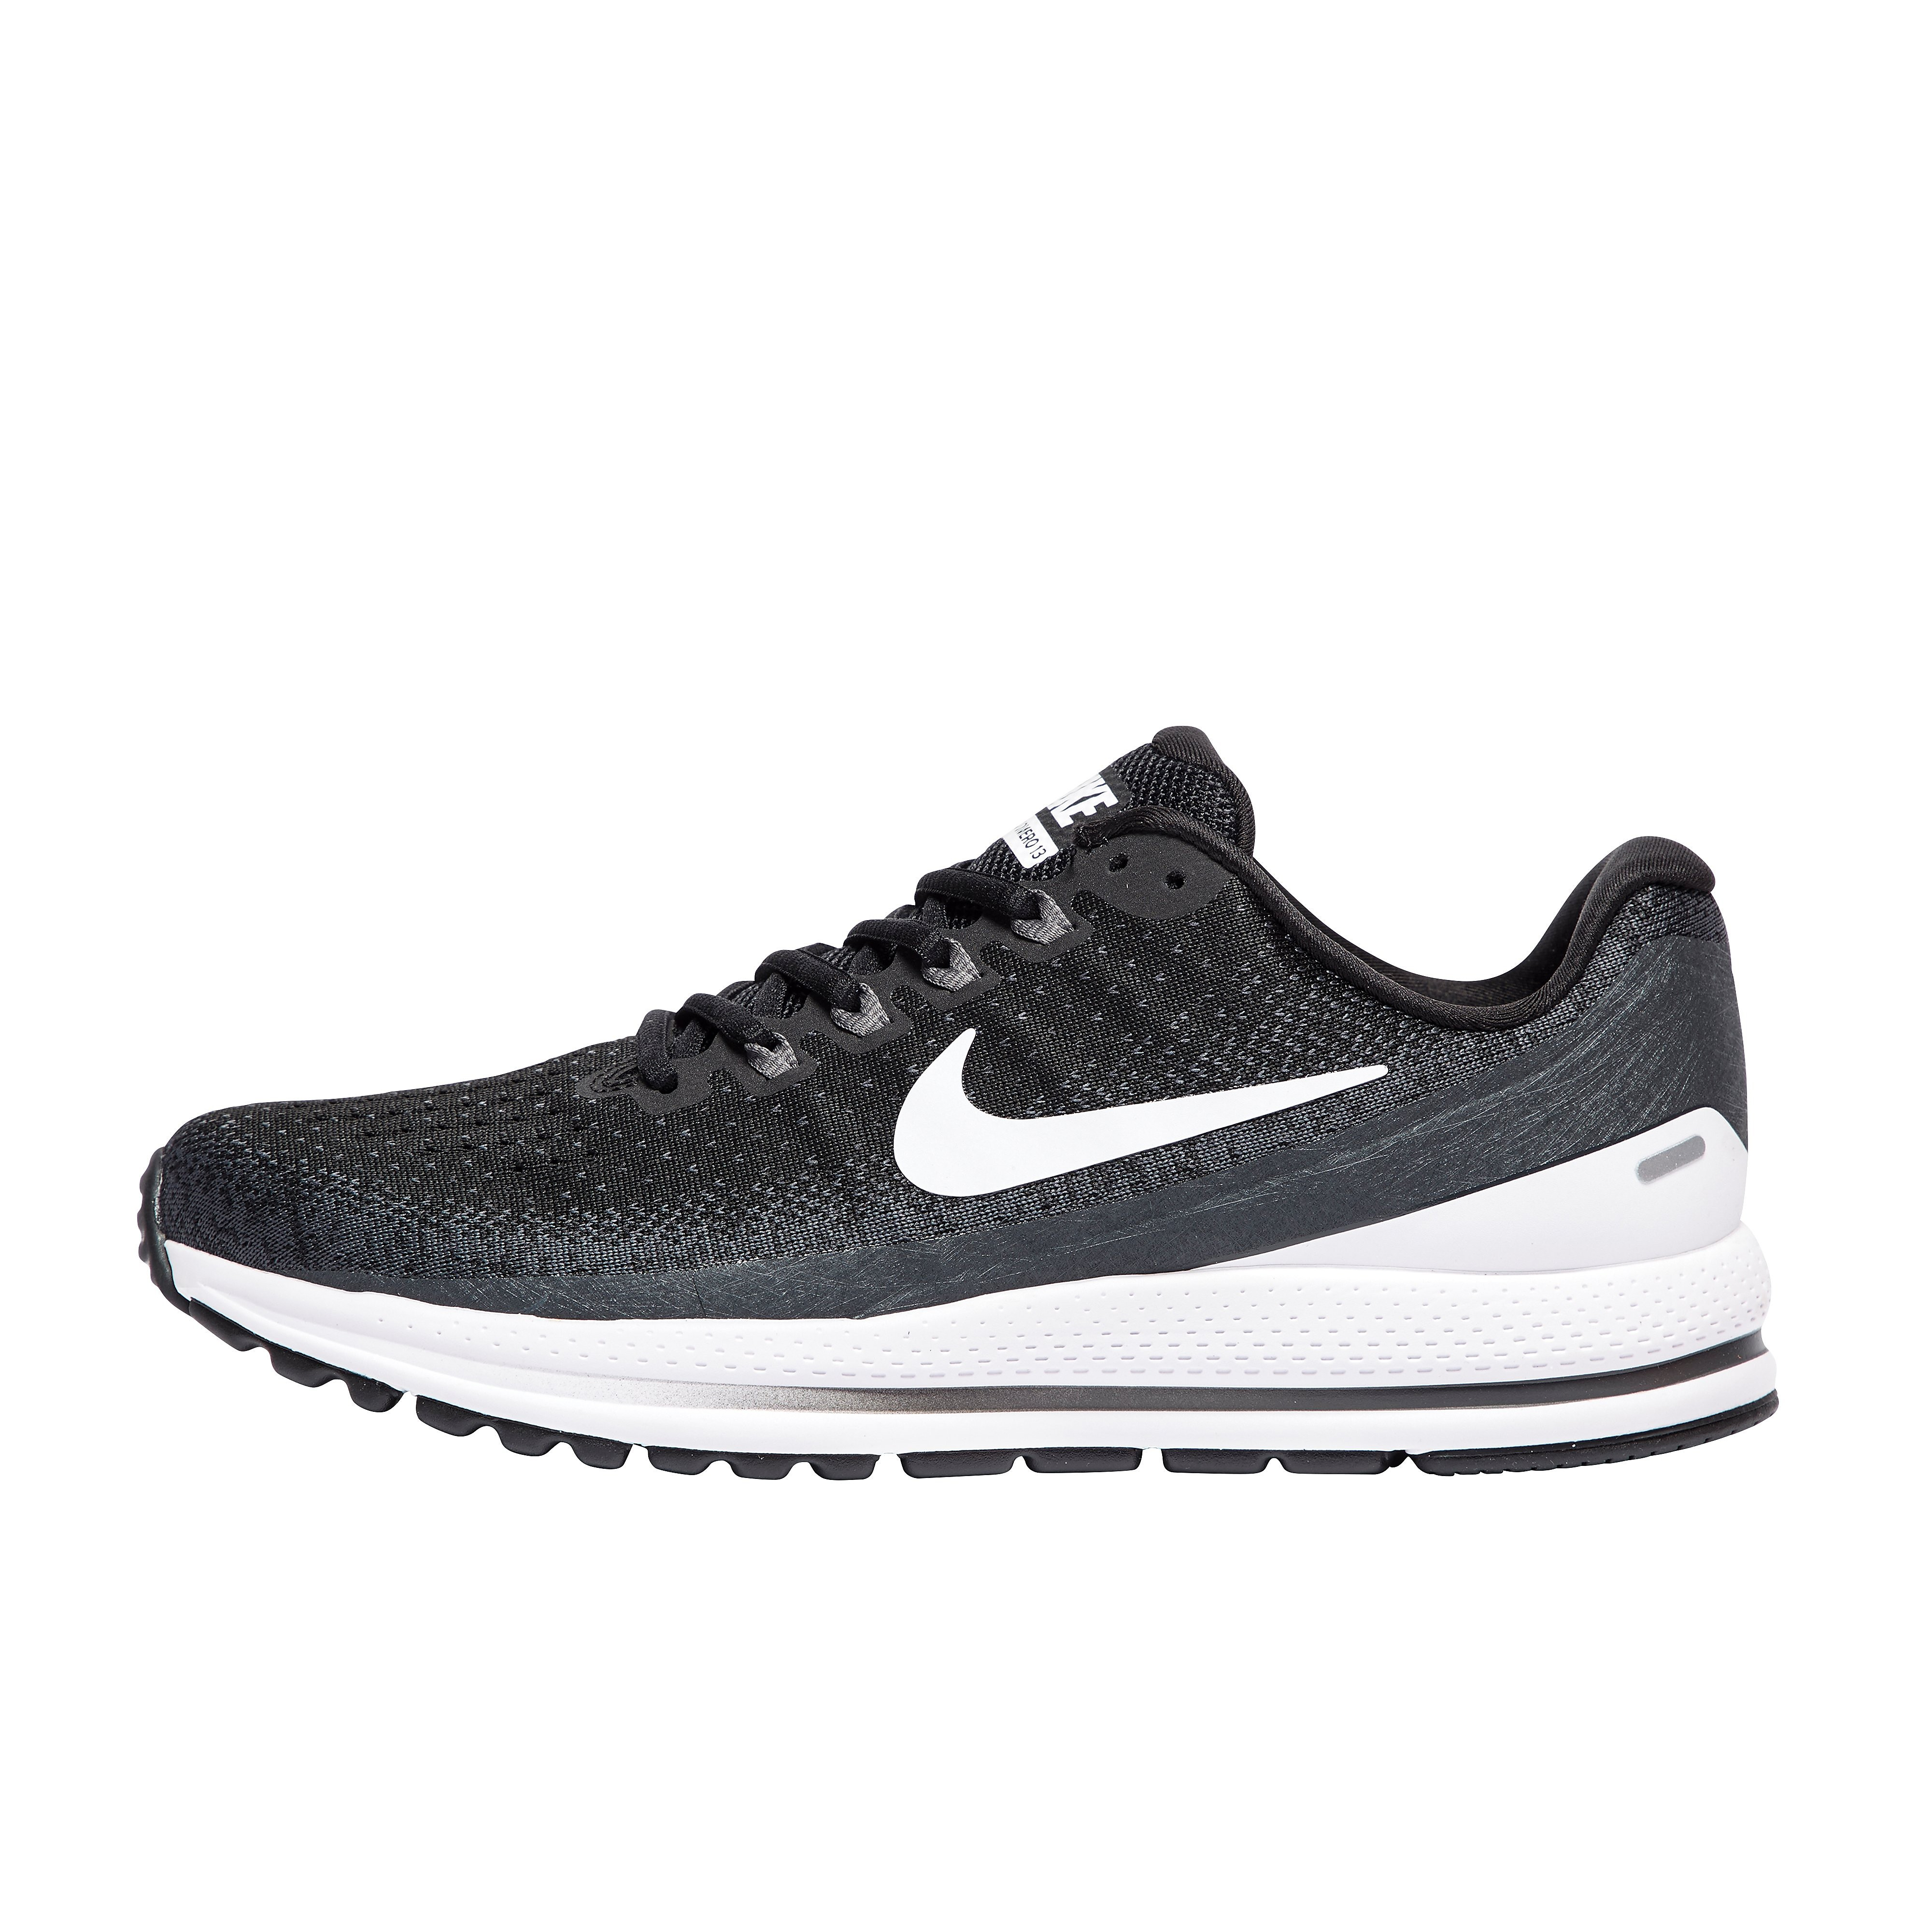 Nike AIR ZOOM VOMERO 13 MEN'S RUNNING SHOES